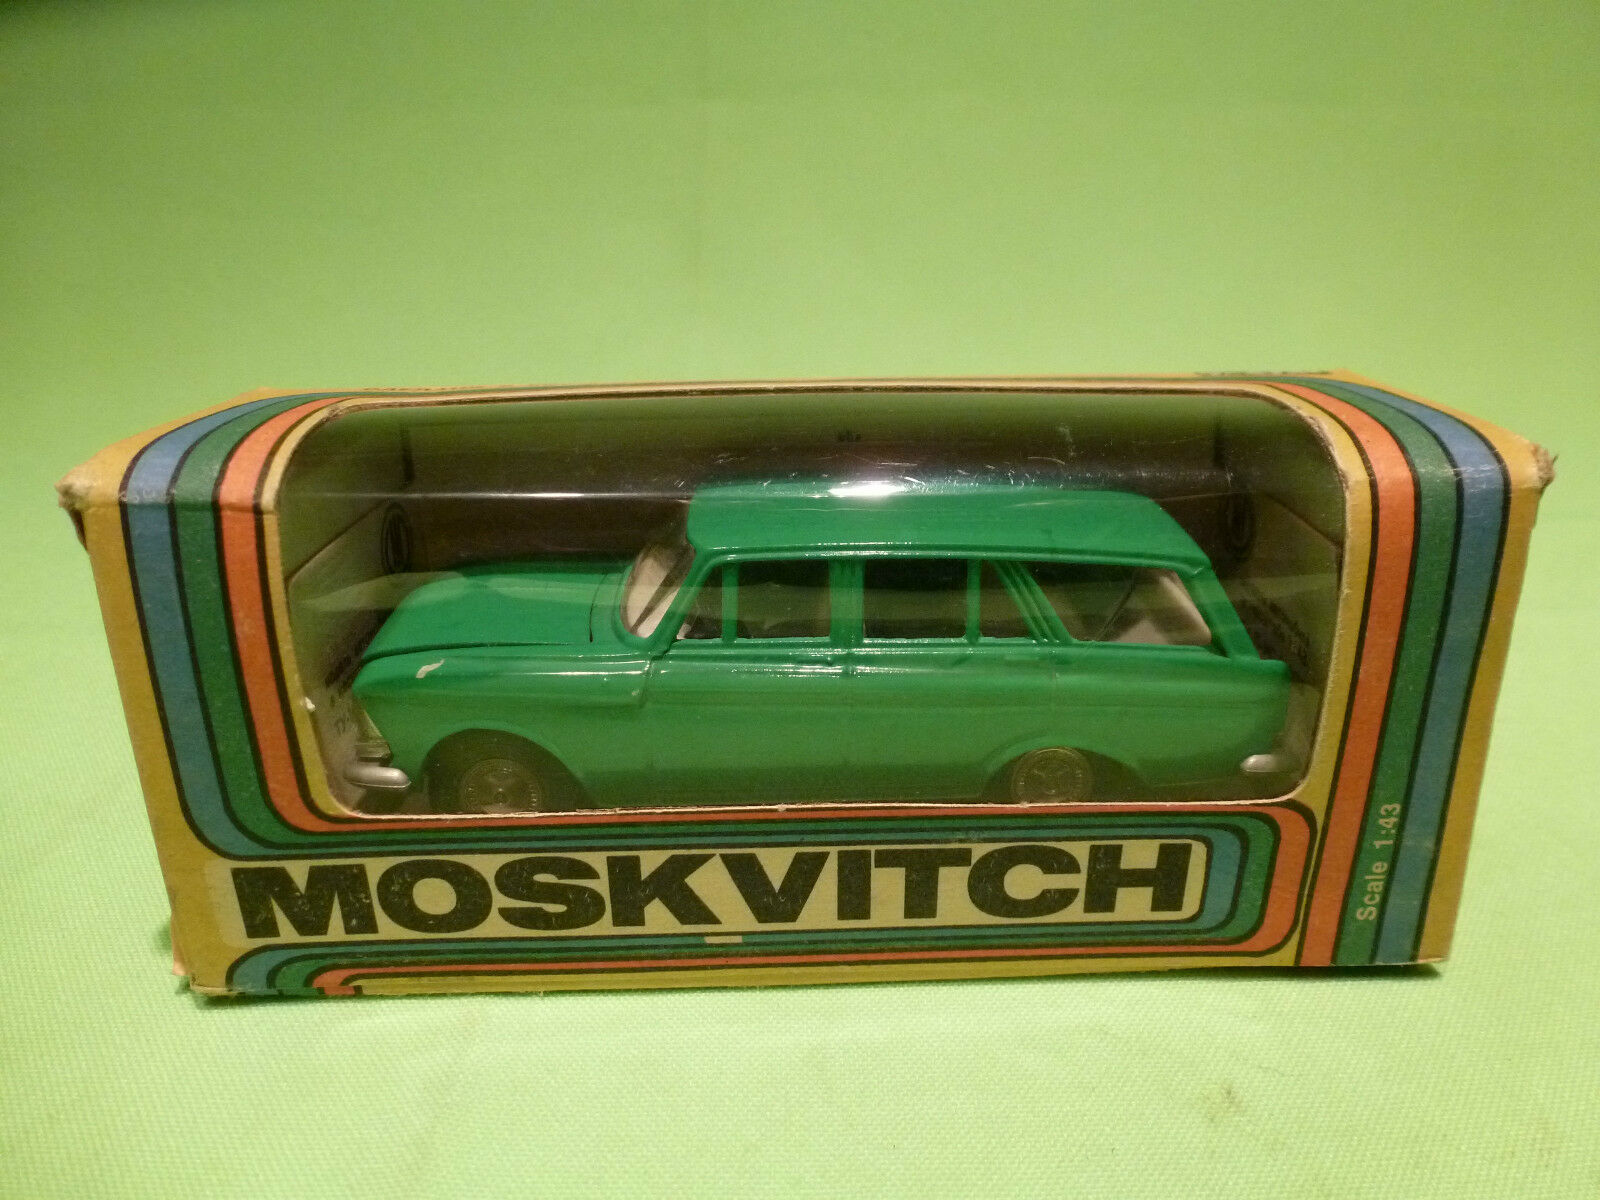 USSR  1 43  MOSKVITCH STATION vert  -  IN ORGINAL BOX.  -  IN GOOD CONDITION